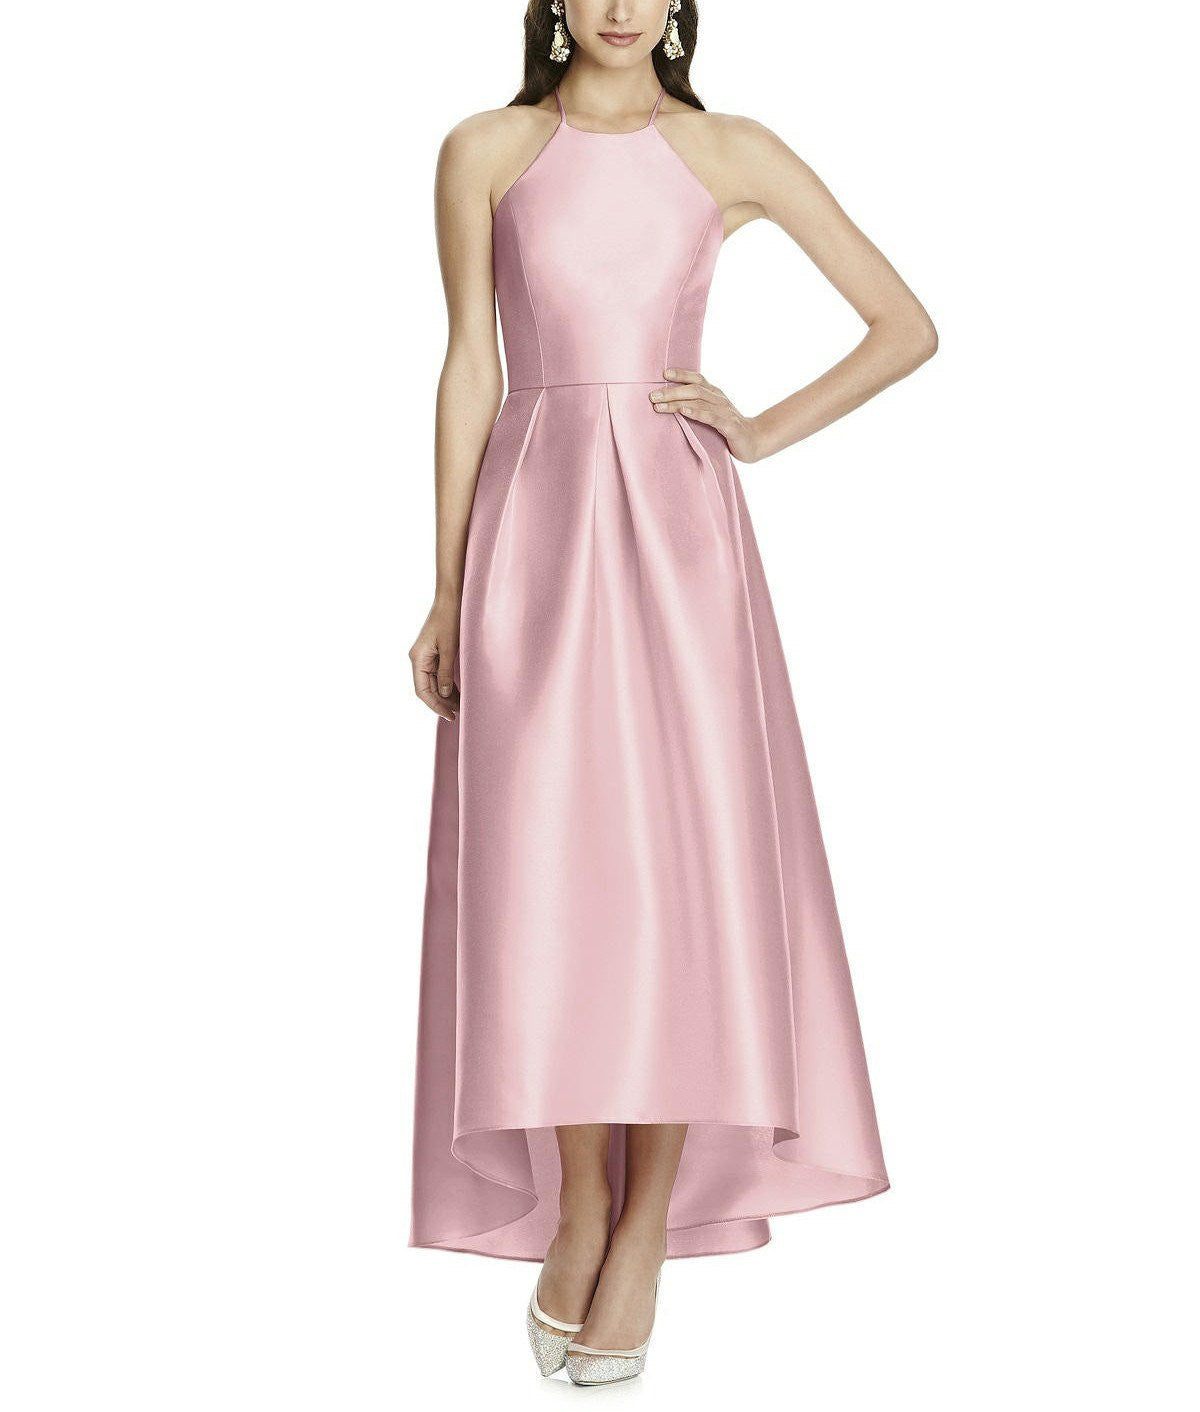 Alfred sung style d741 quickship bridesmaid dress brideside alfred sung style d741 quickship ombrellifo Gallery